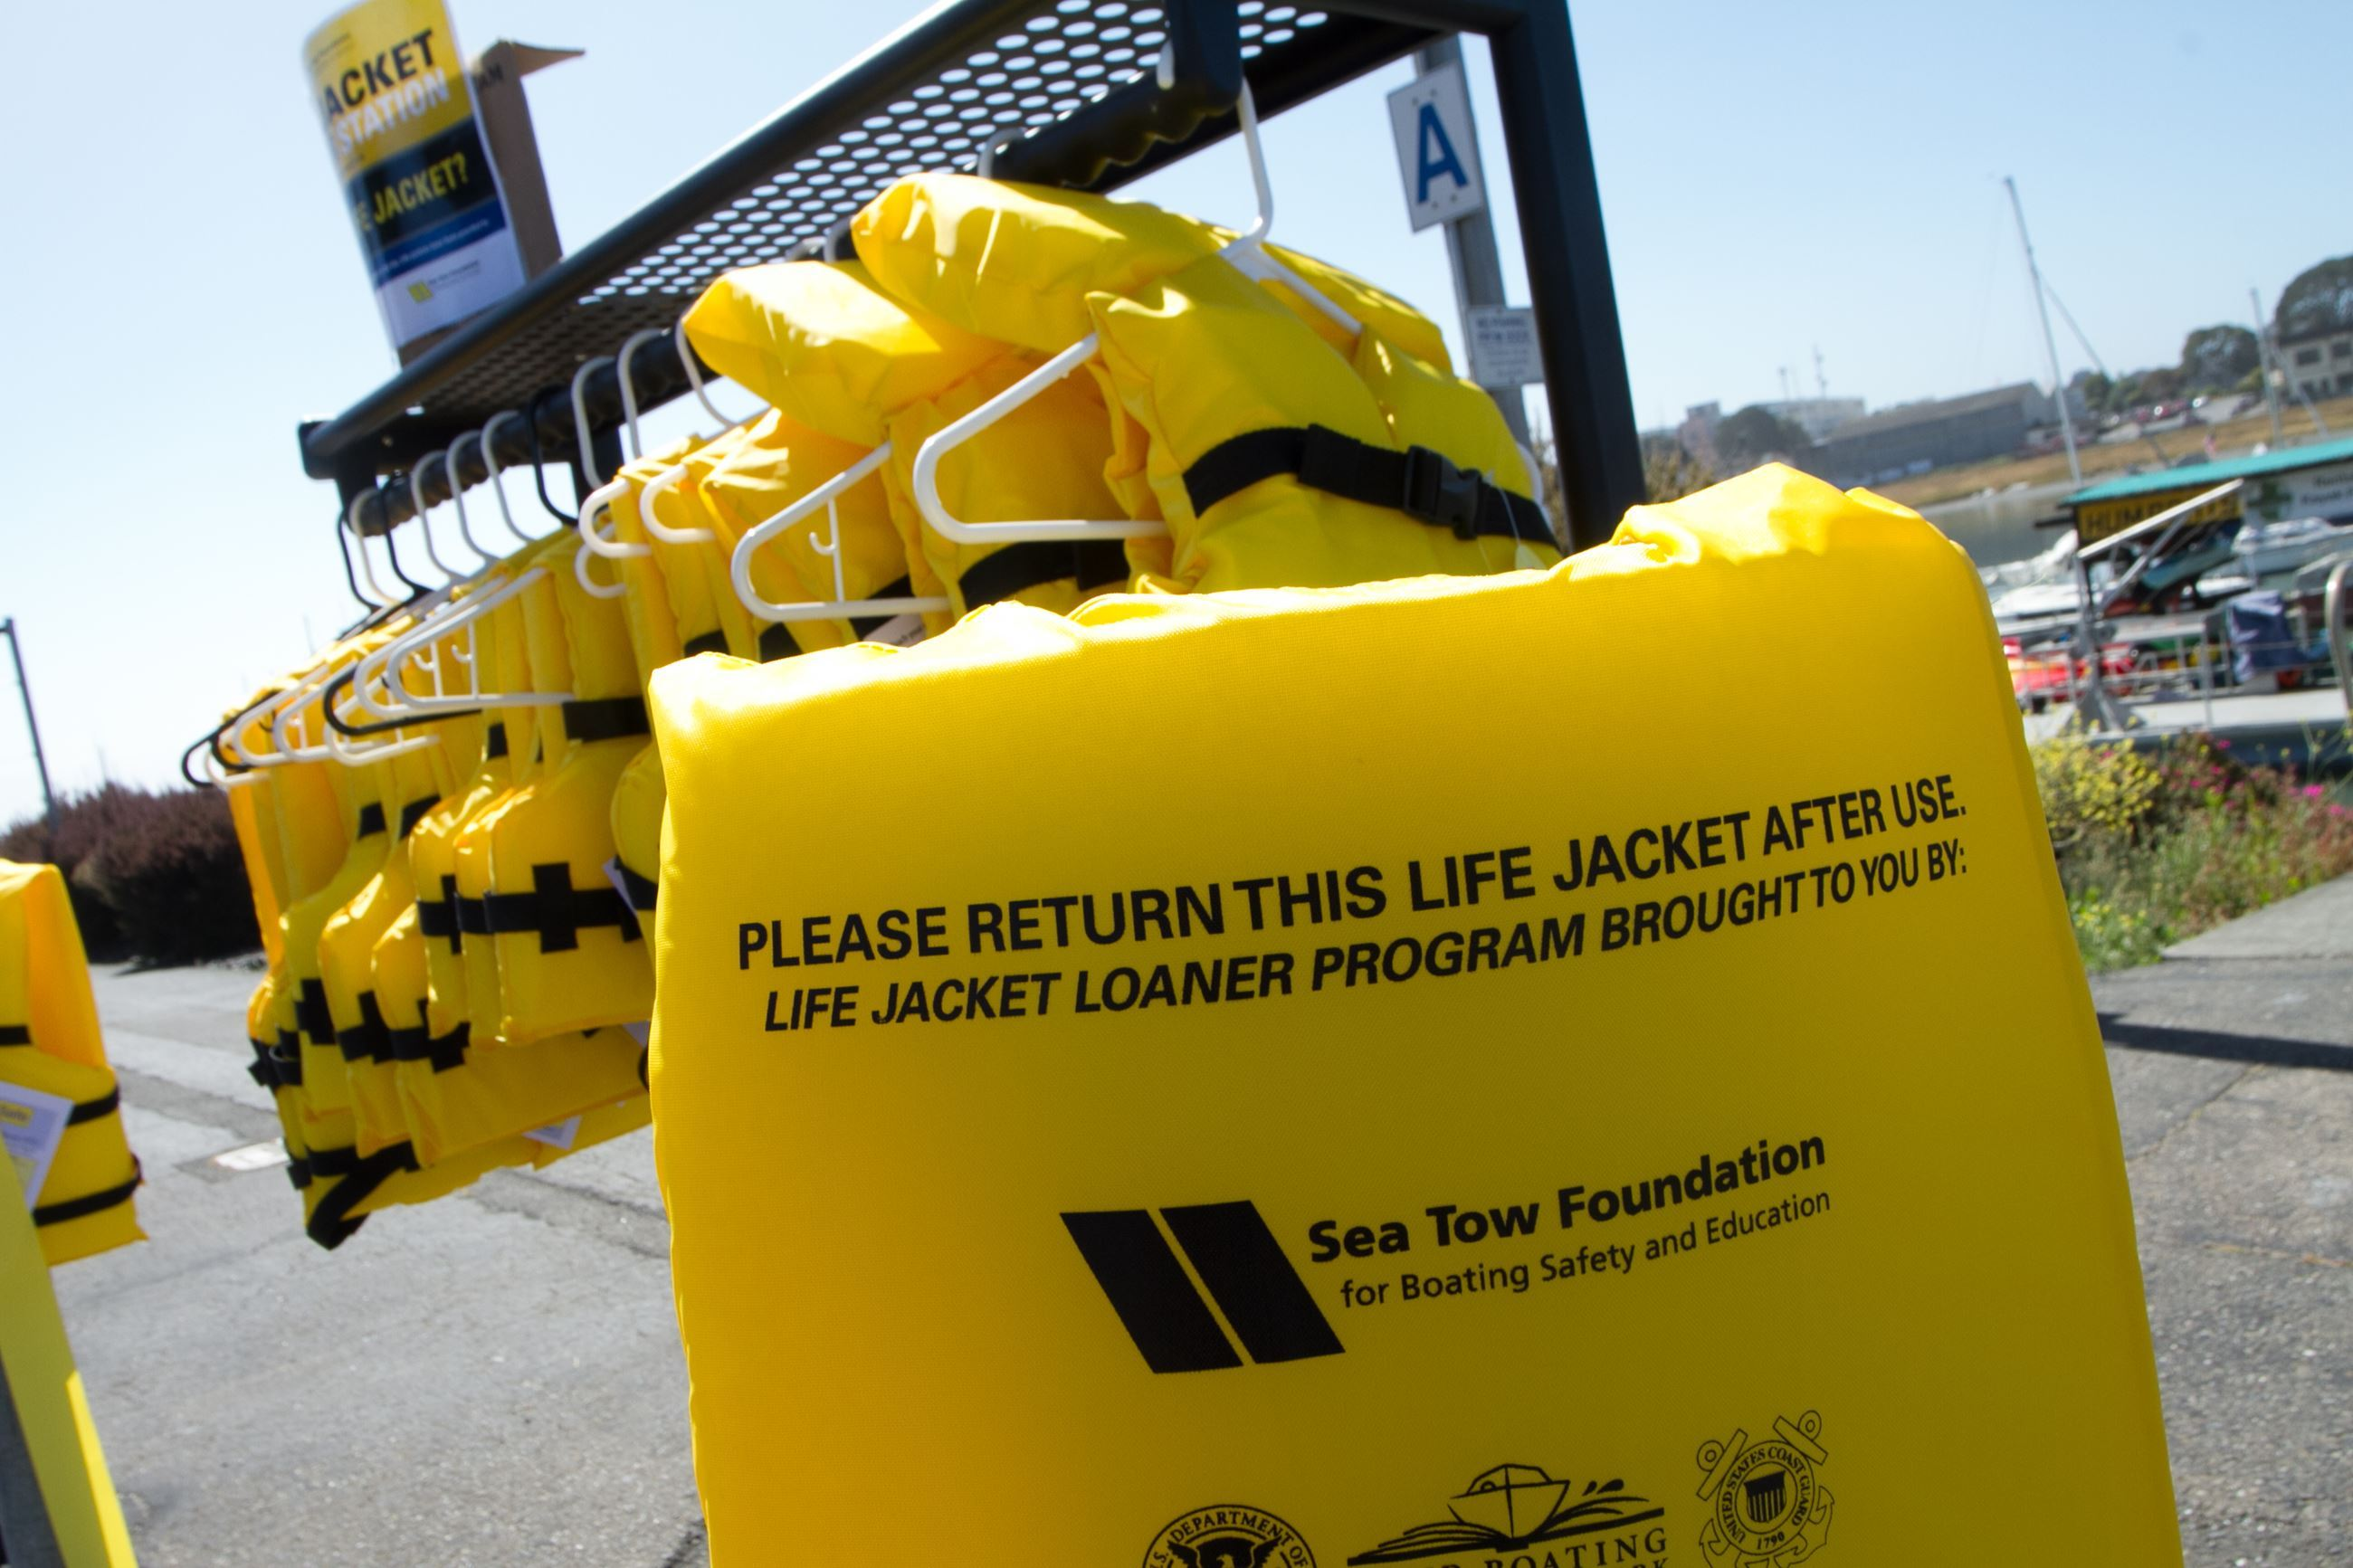 Brightly colored life jackets are available to borrow at loan stations around Humboldt County.